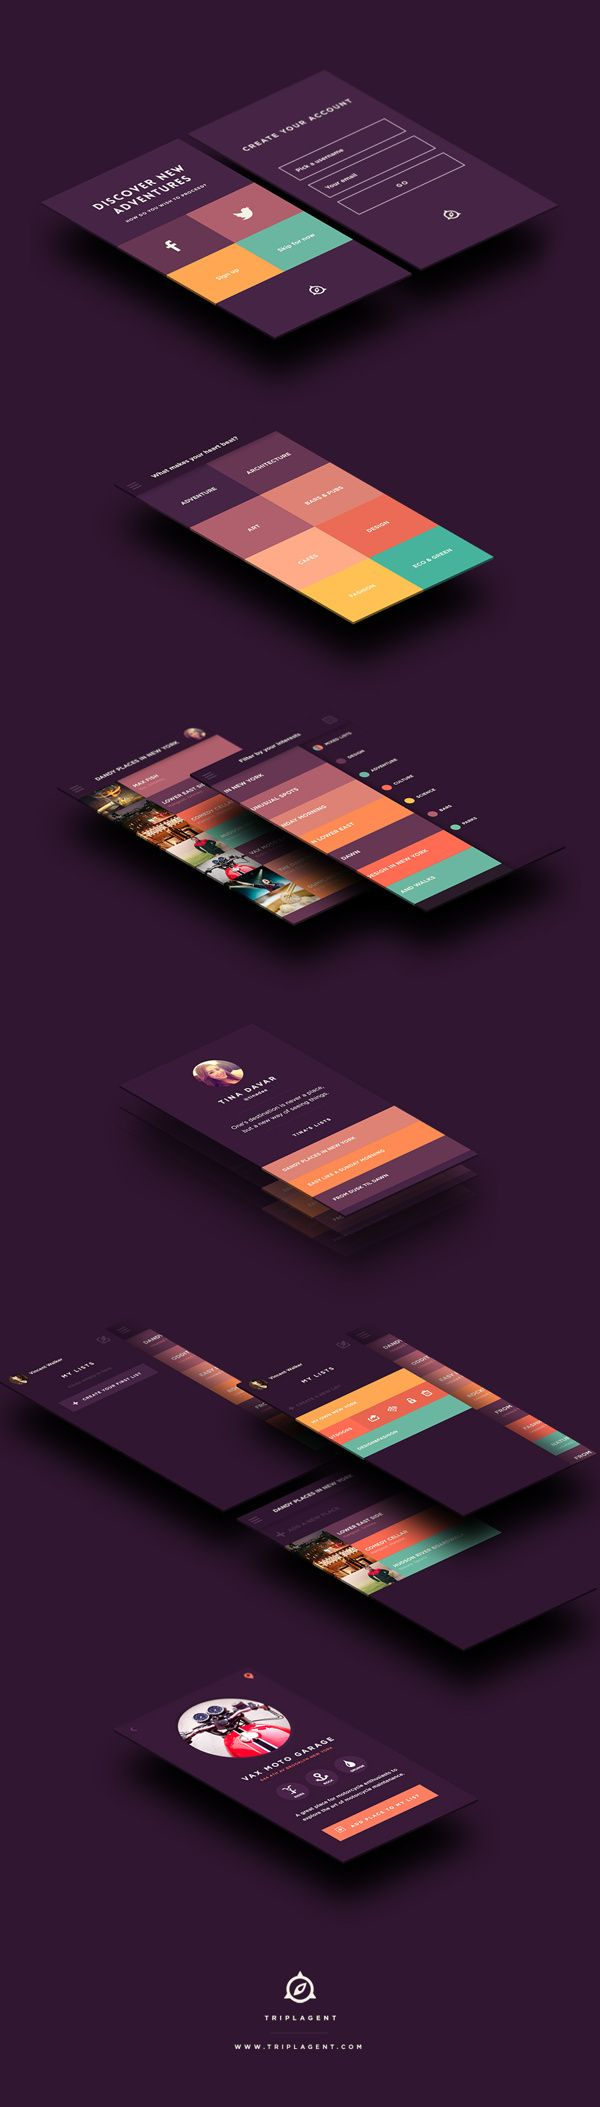 TriplAgent Mobile Design by Taras Kravtchouk, via Behance